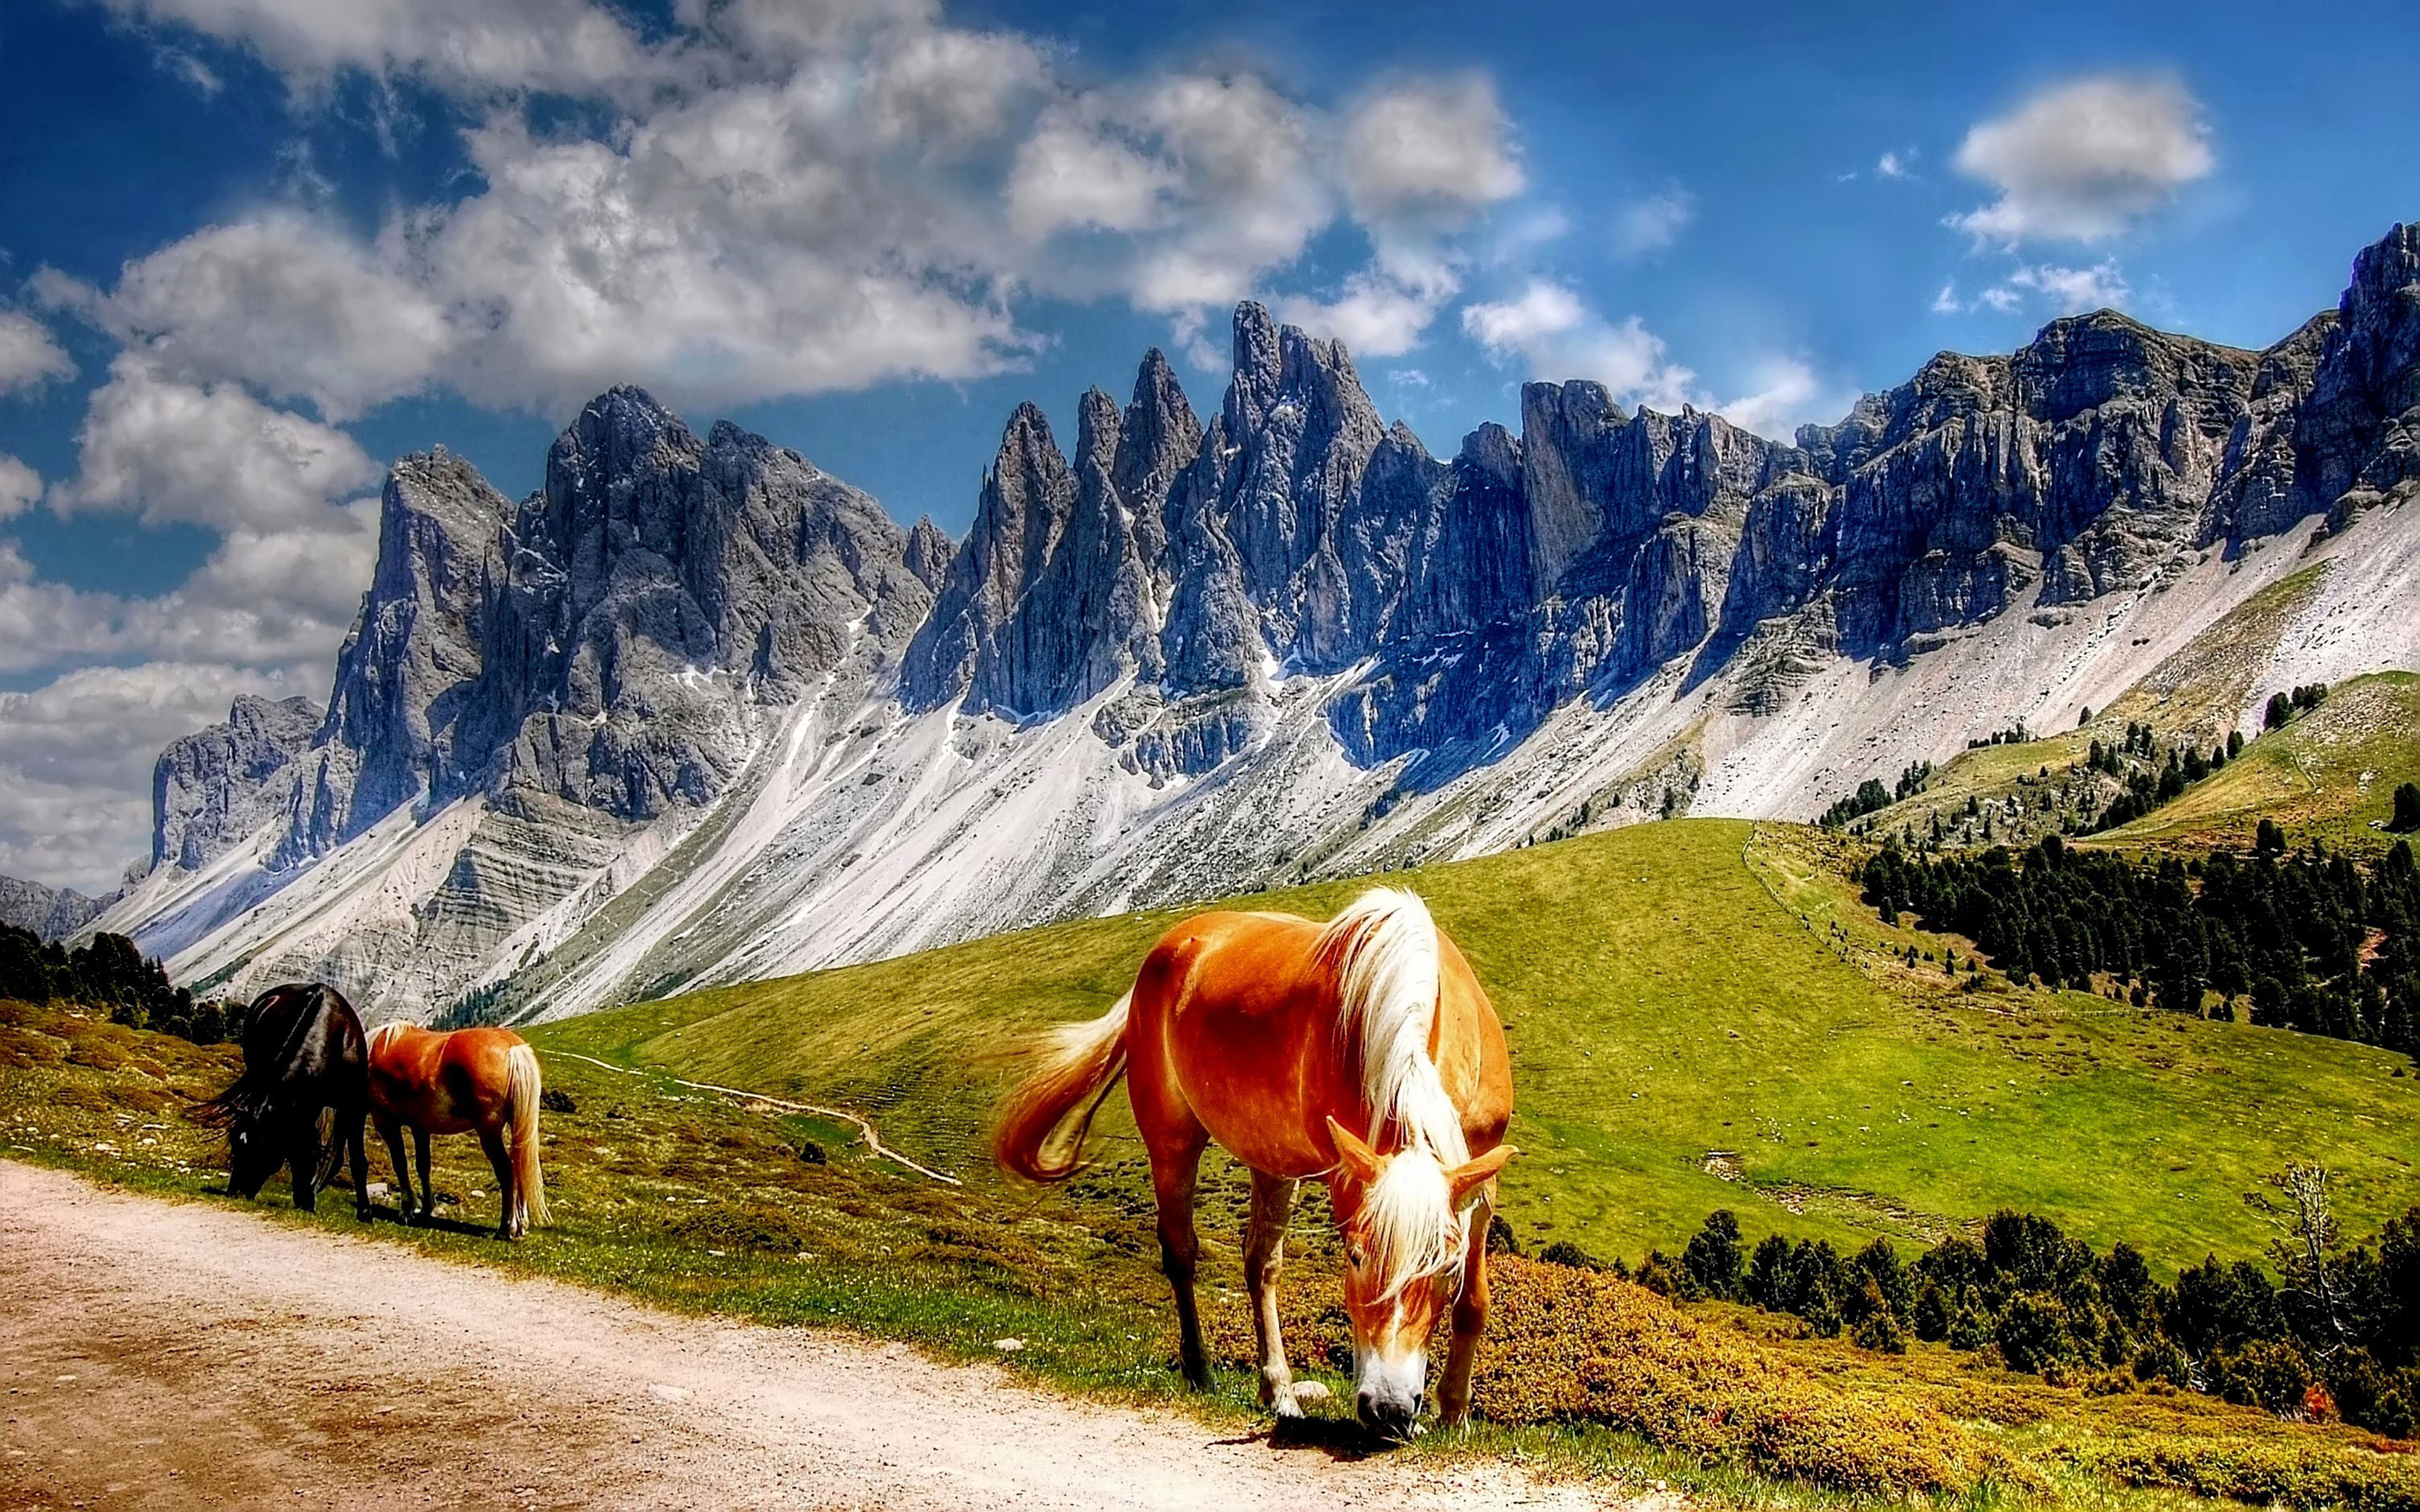 Fall Farm Wallpaper Horses In The Dolomites Mountains Italy South Tyrol